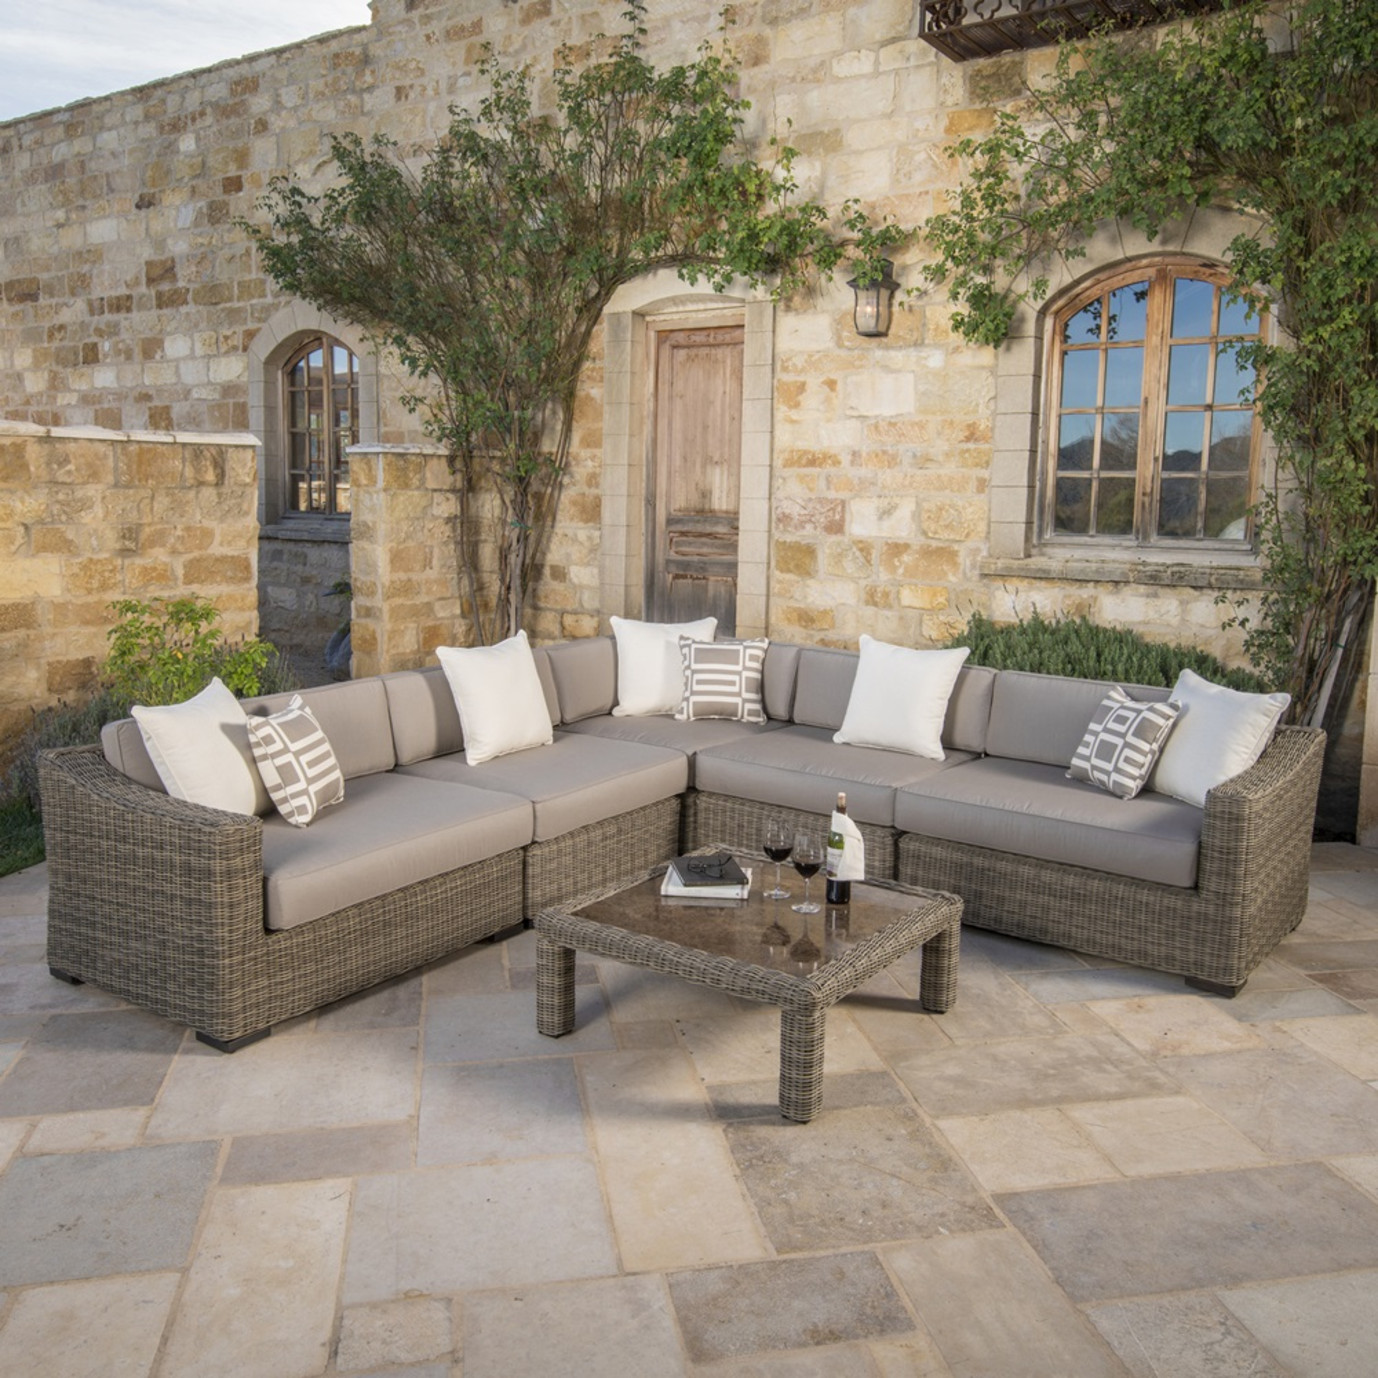 Resort™ Deluxe 6pc Seating Set - Weathered Grey